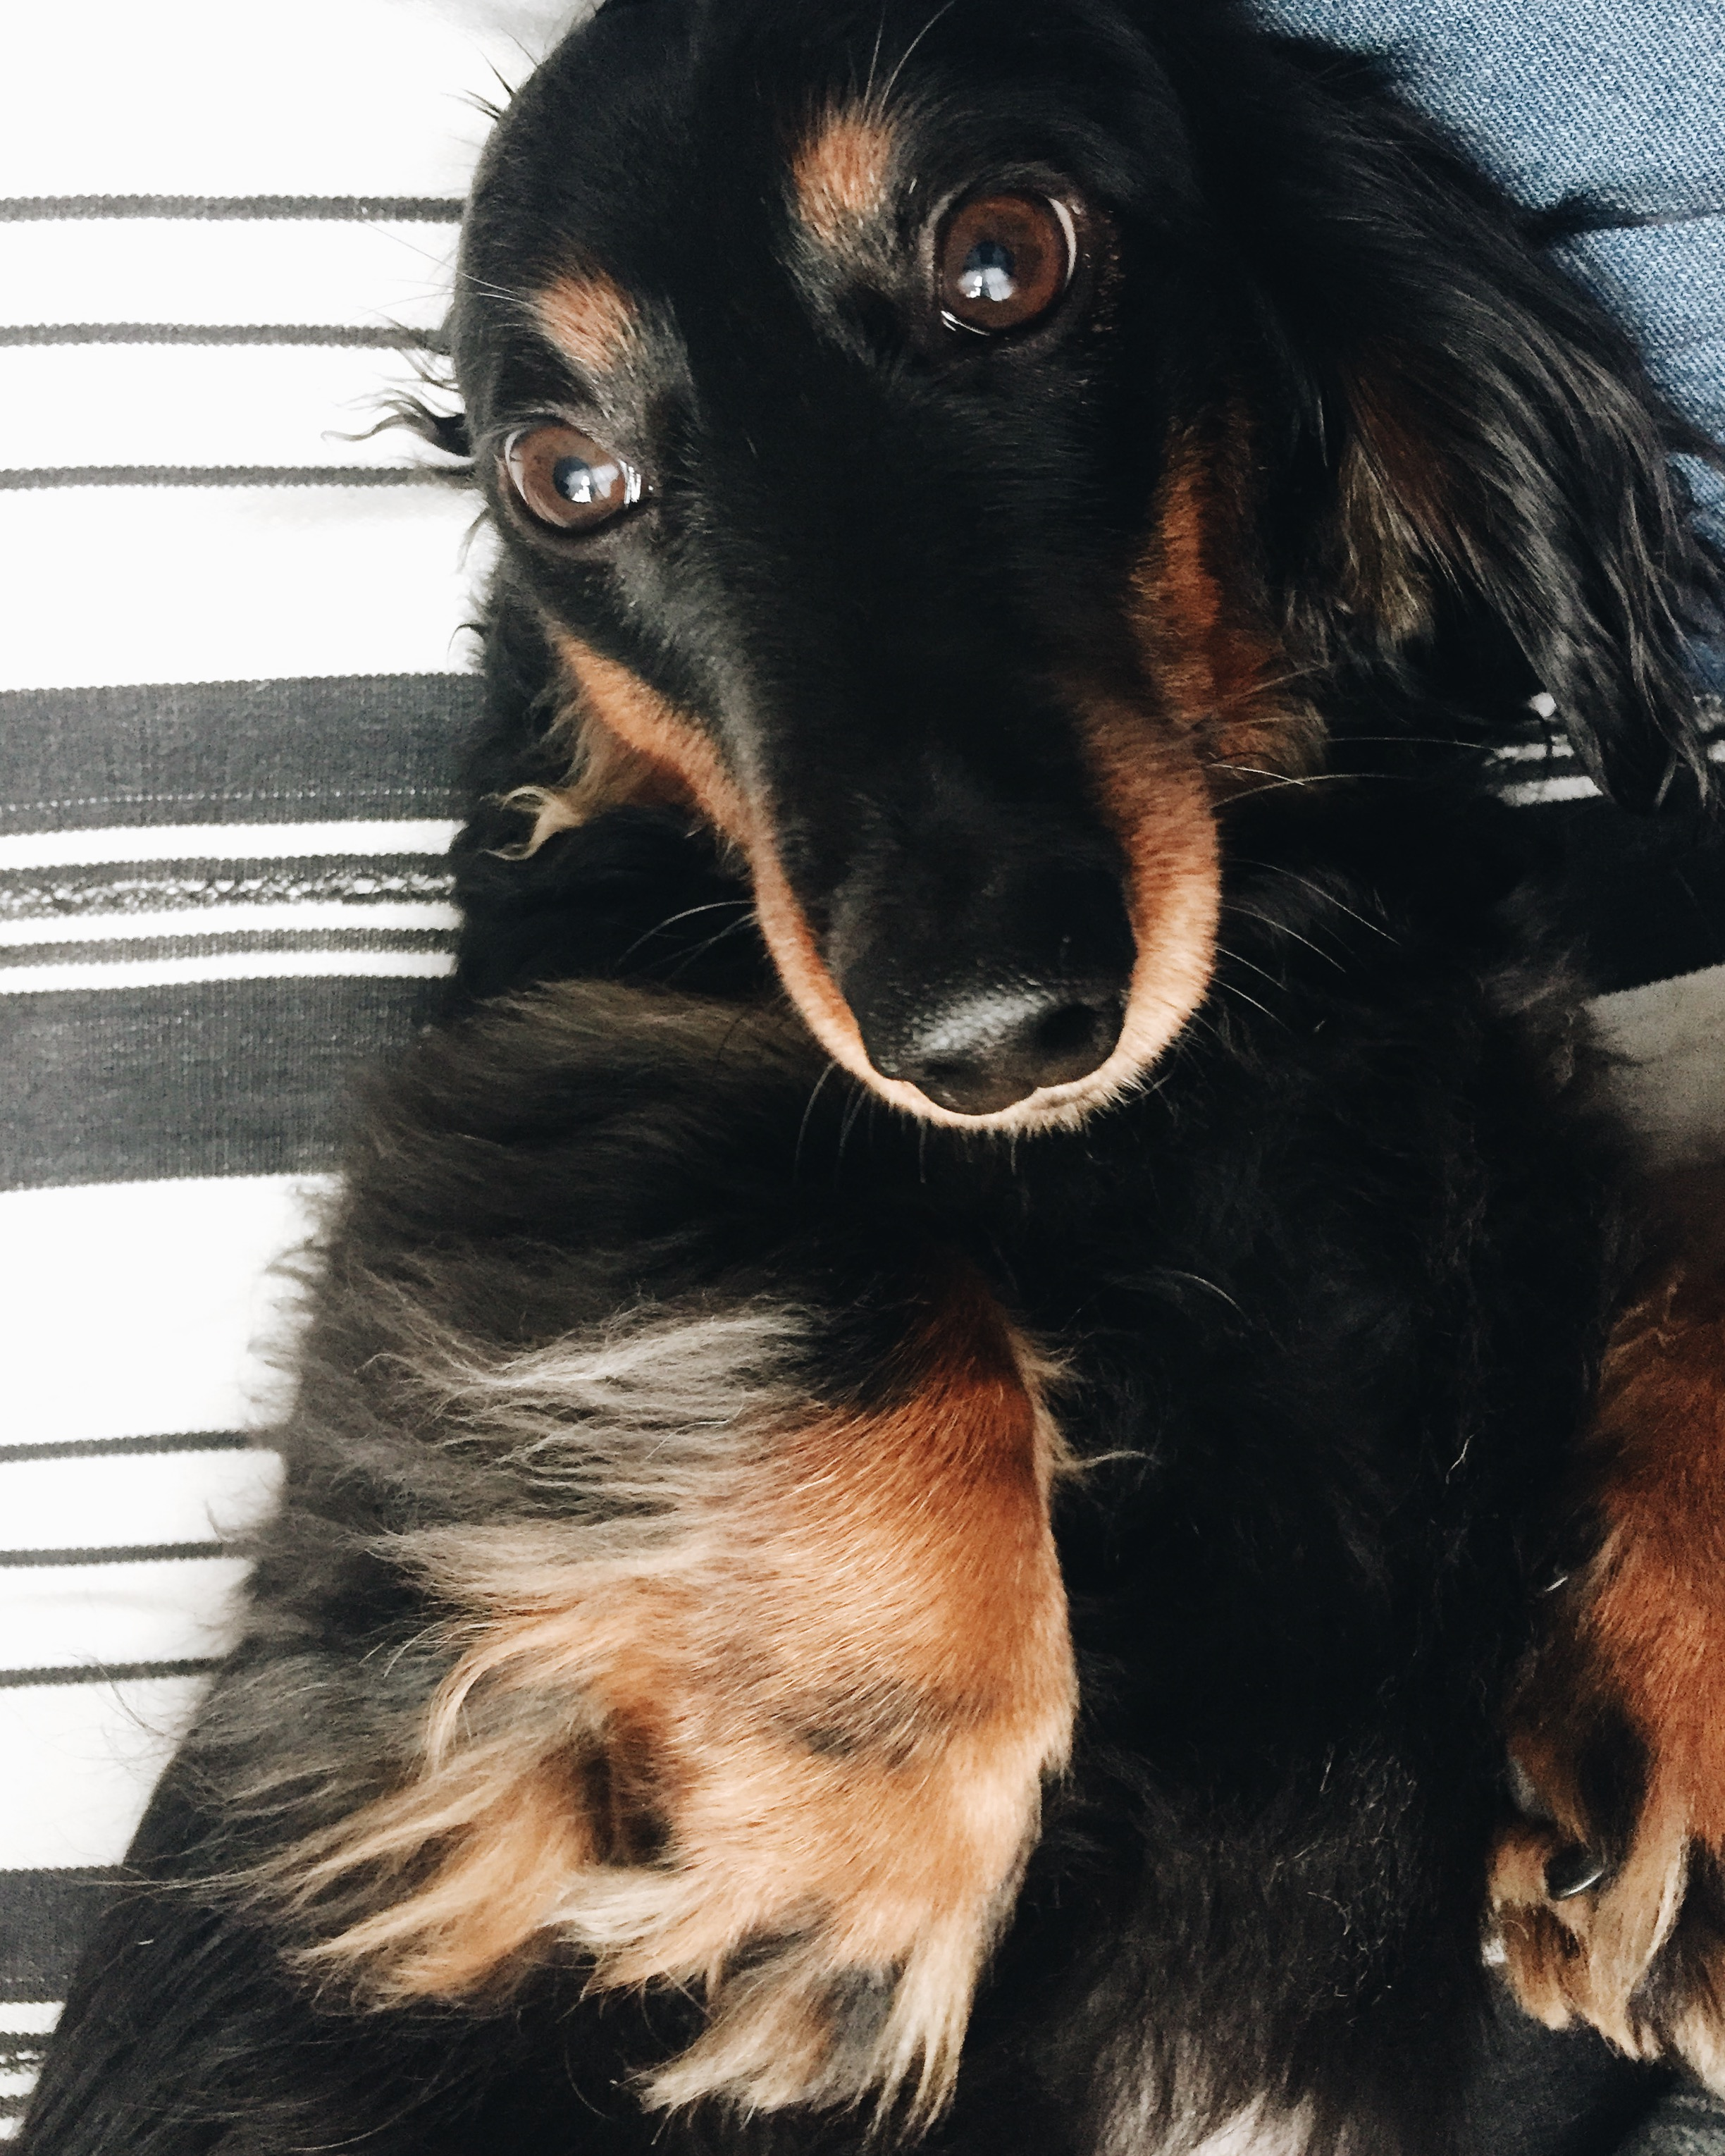 when the world is super crazy, I like to squeeze my furry friend, long haired dachshund. doesn't a wiener dog help everything? more on jojotastic.com